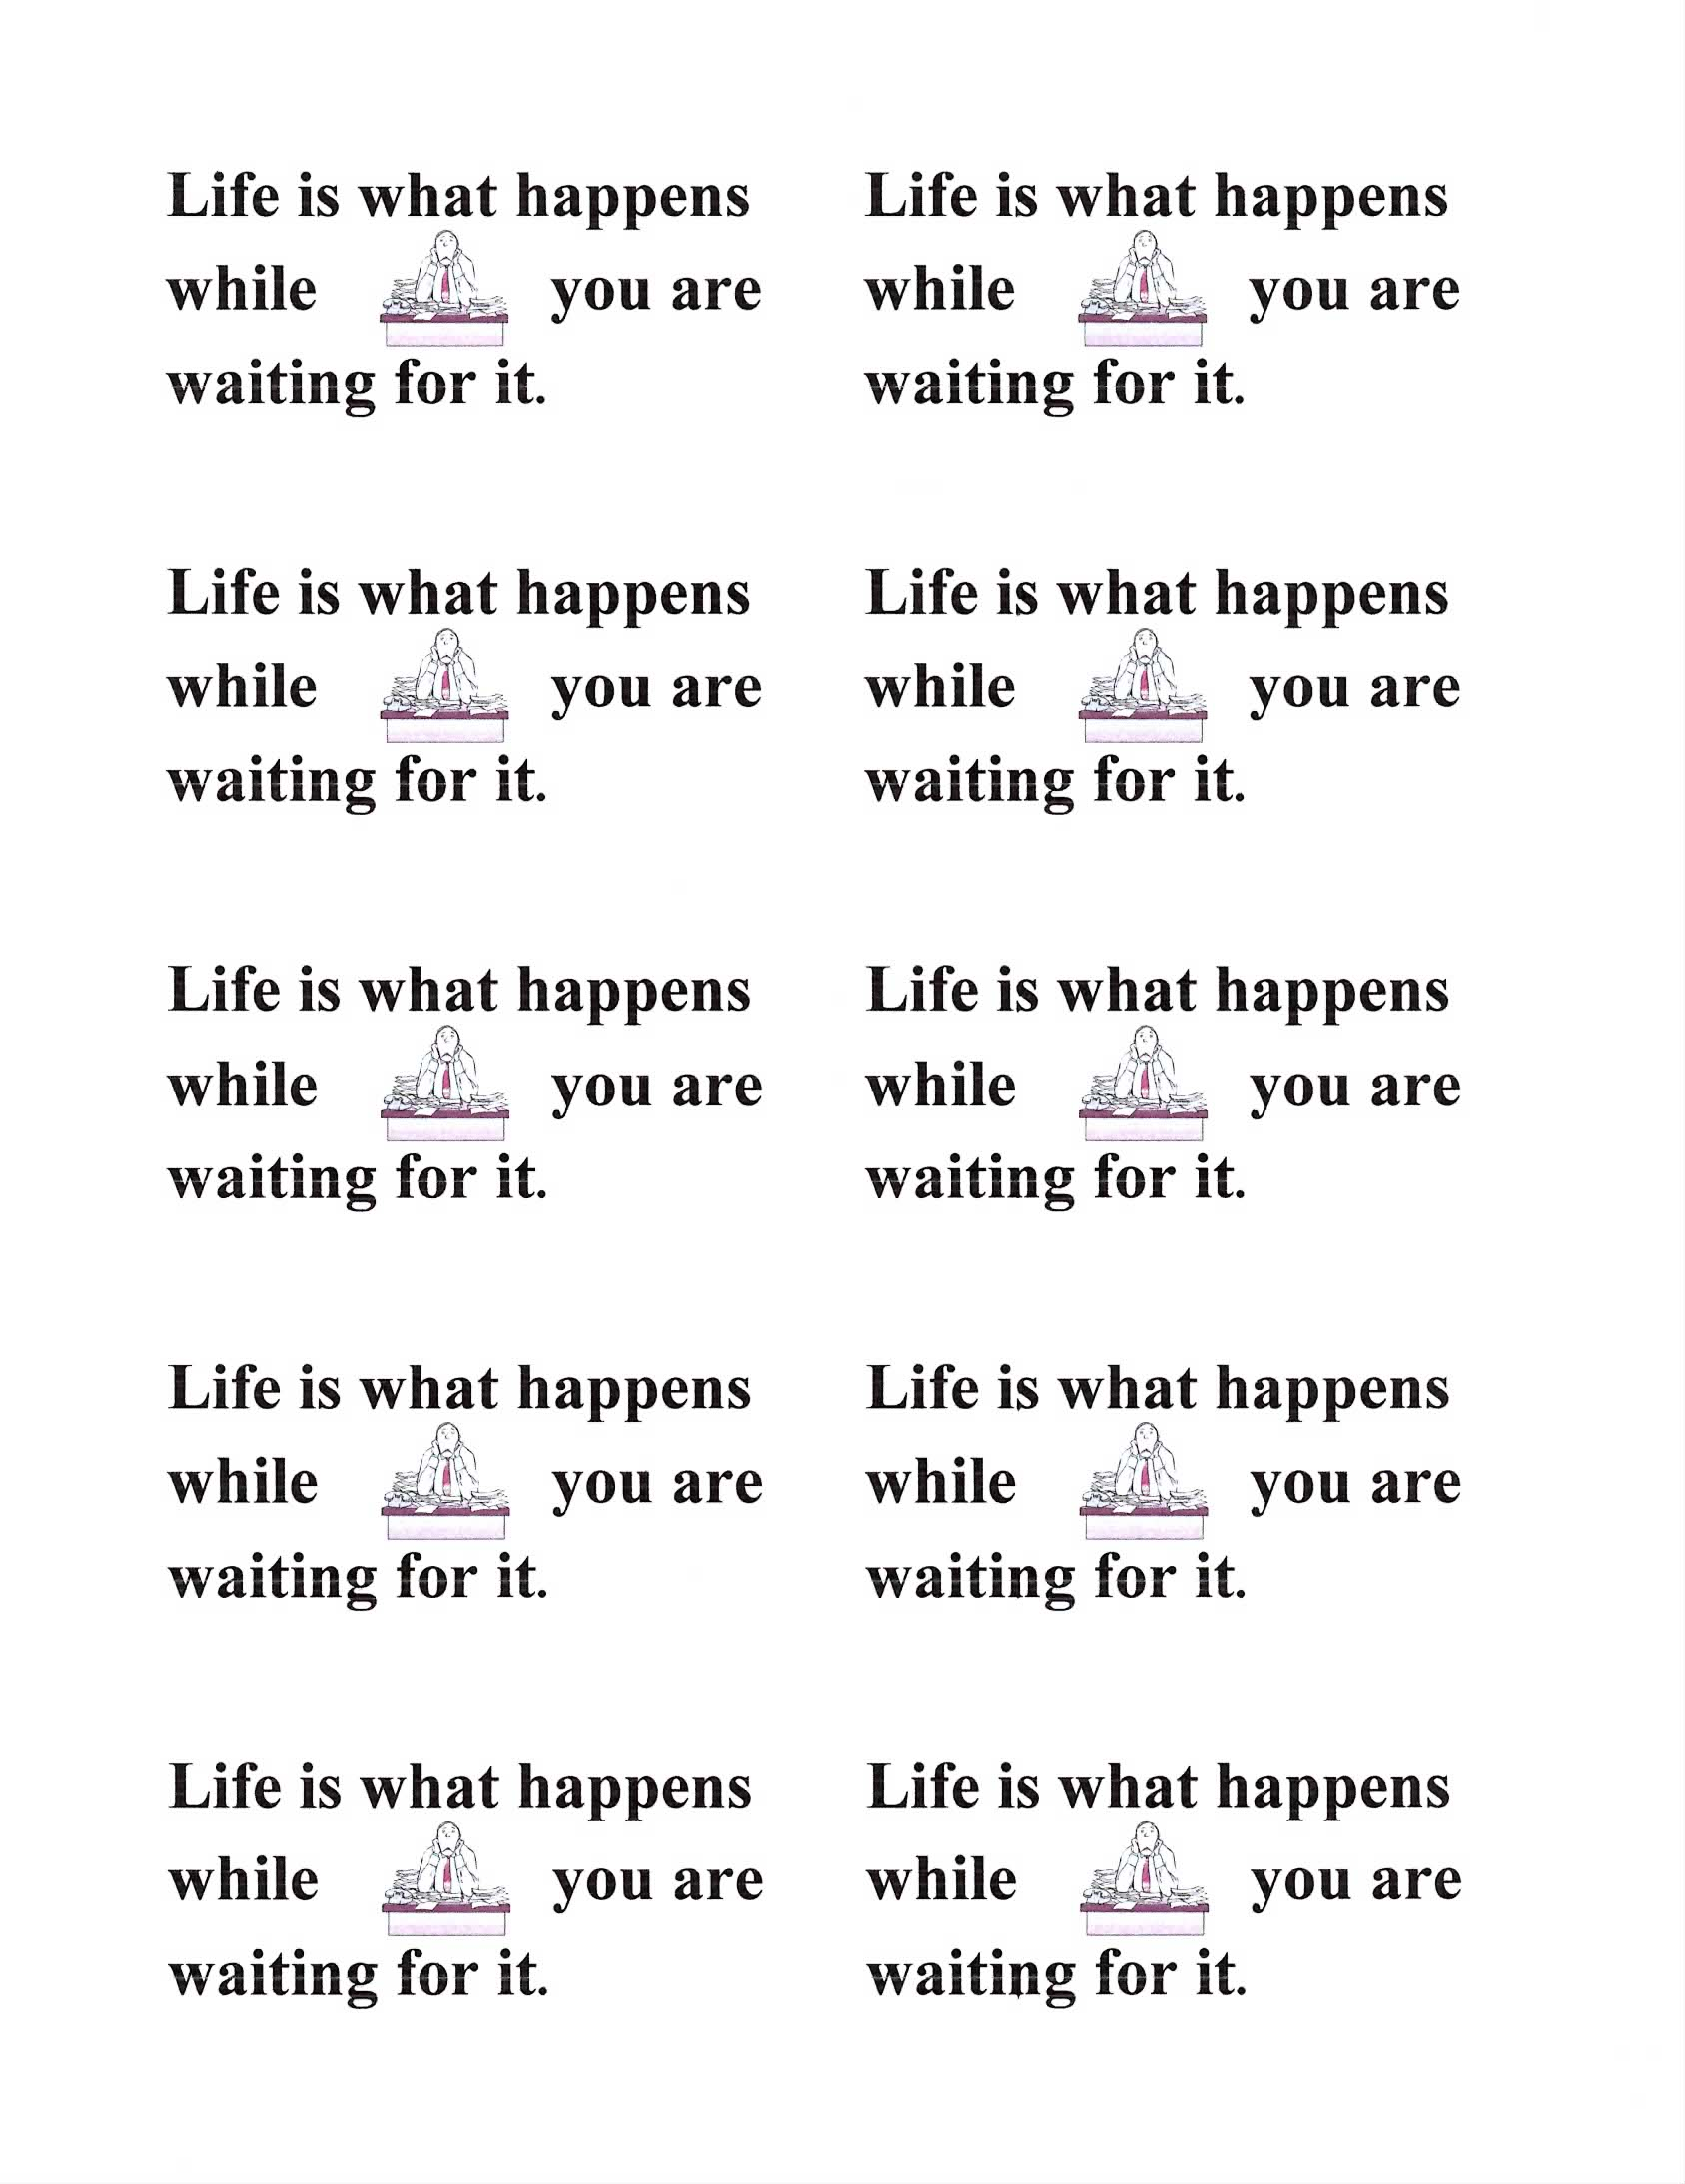 Life is What Happens While You're Waiting for It.